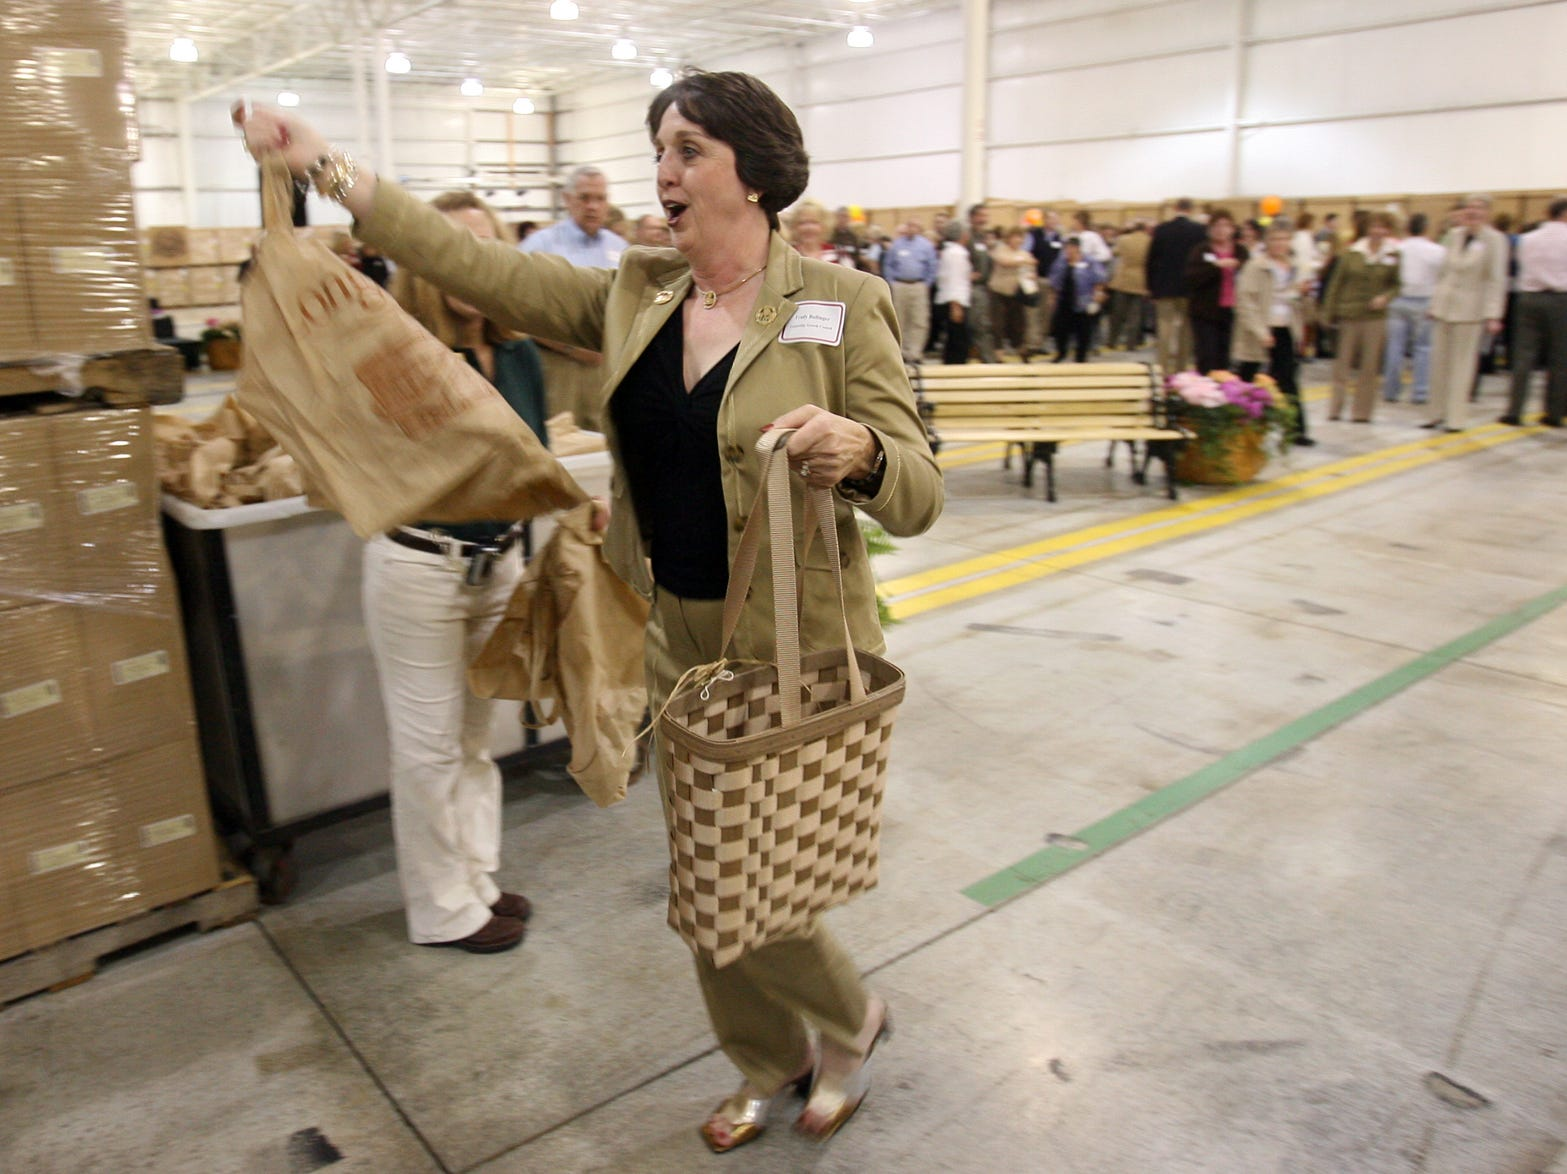 Longaberger sales consultant Trudy Ballinger is among the first to shop at the new Longaberger Factory Store.